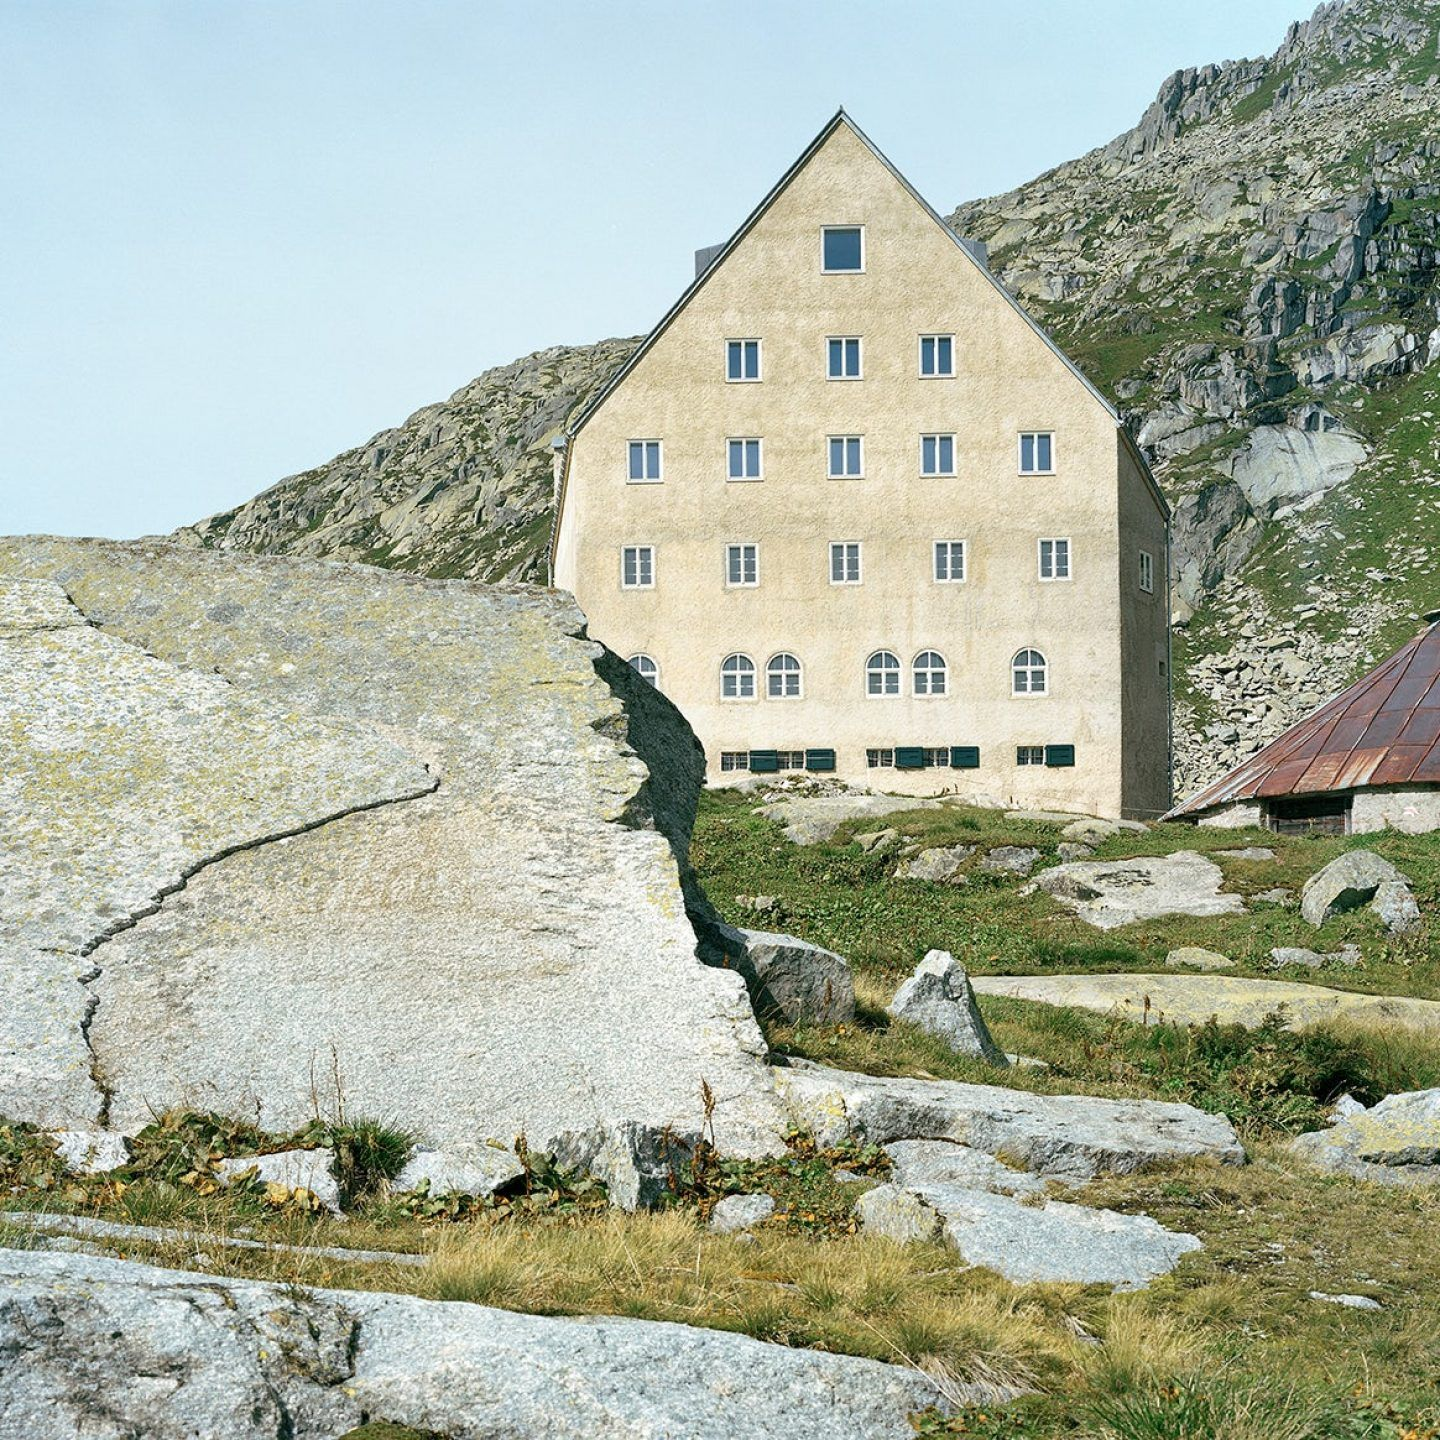 IGNANT-Architecture-Miller-Maranta-Old-Hospice-St-Gotthard-Pass-4